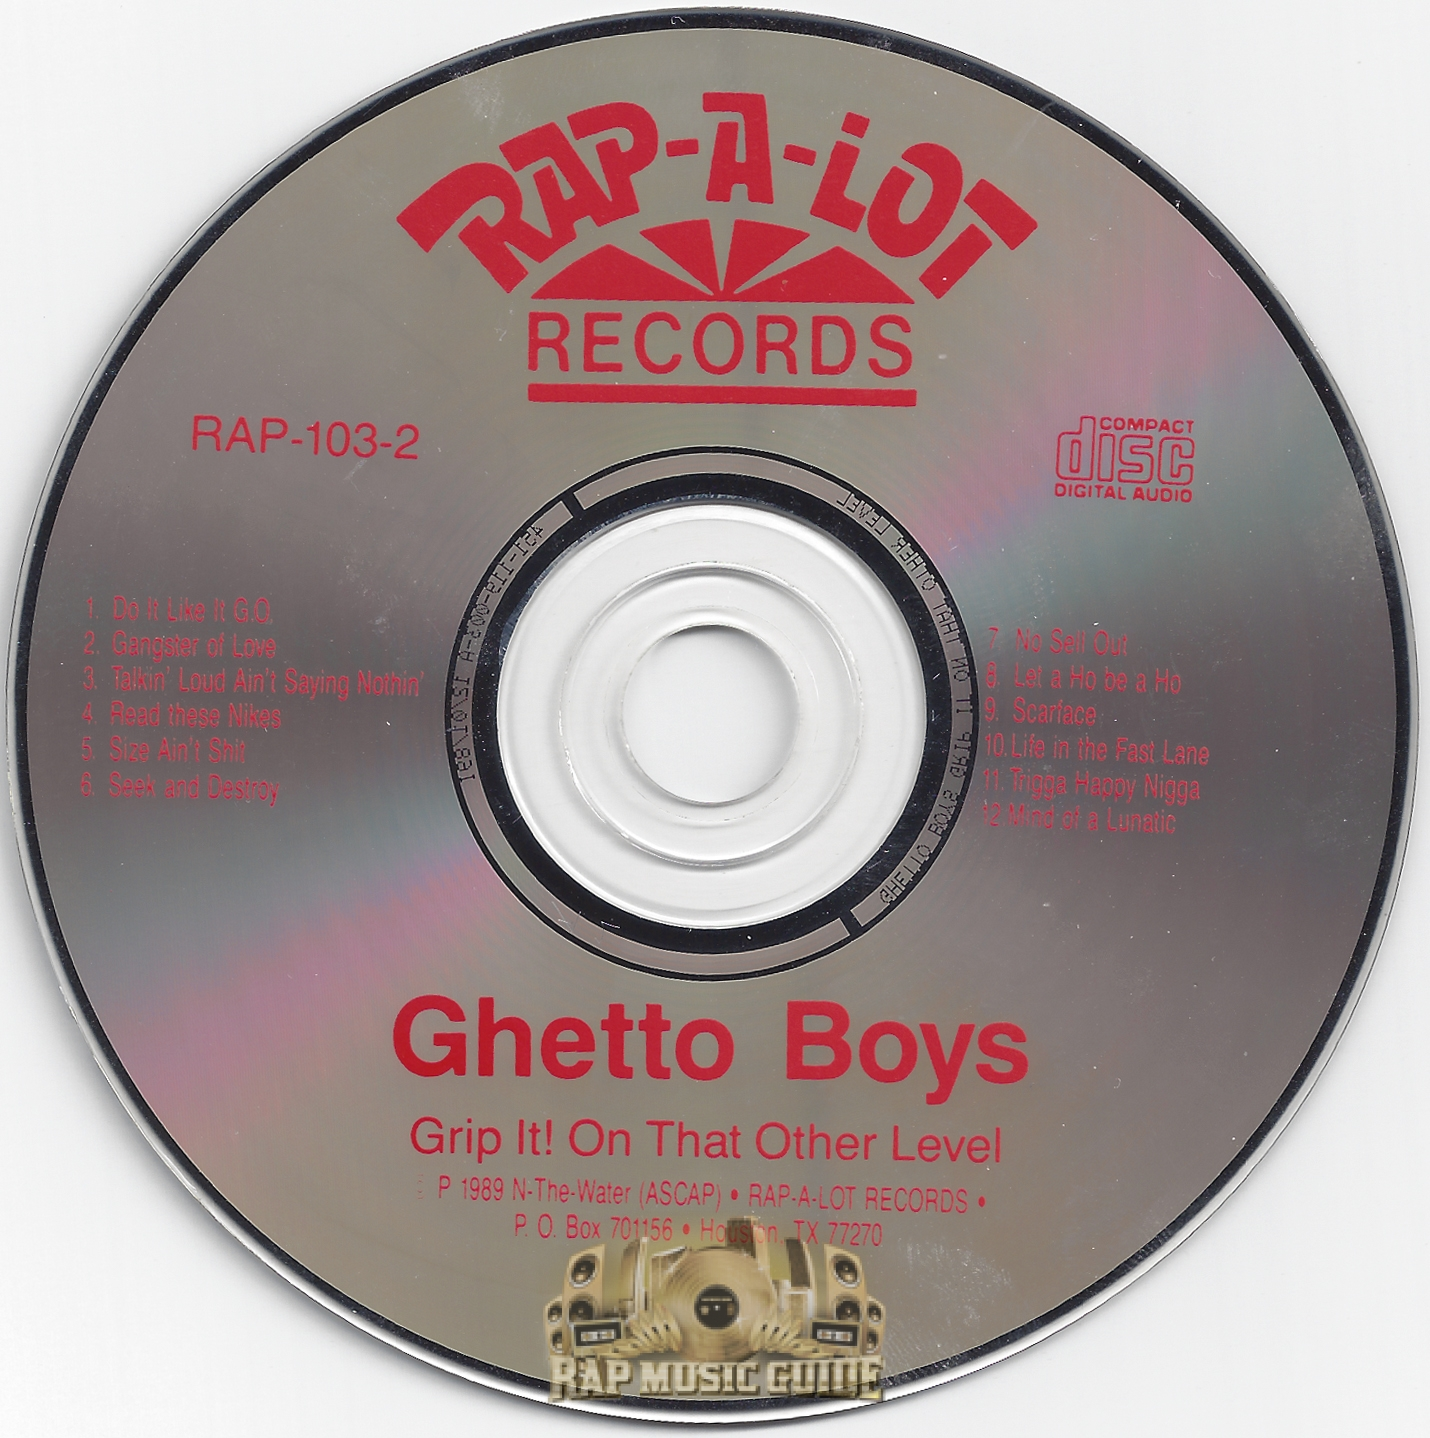 Ghetto Boys Grip It! On That Other Level cd